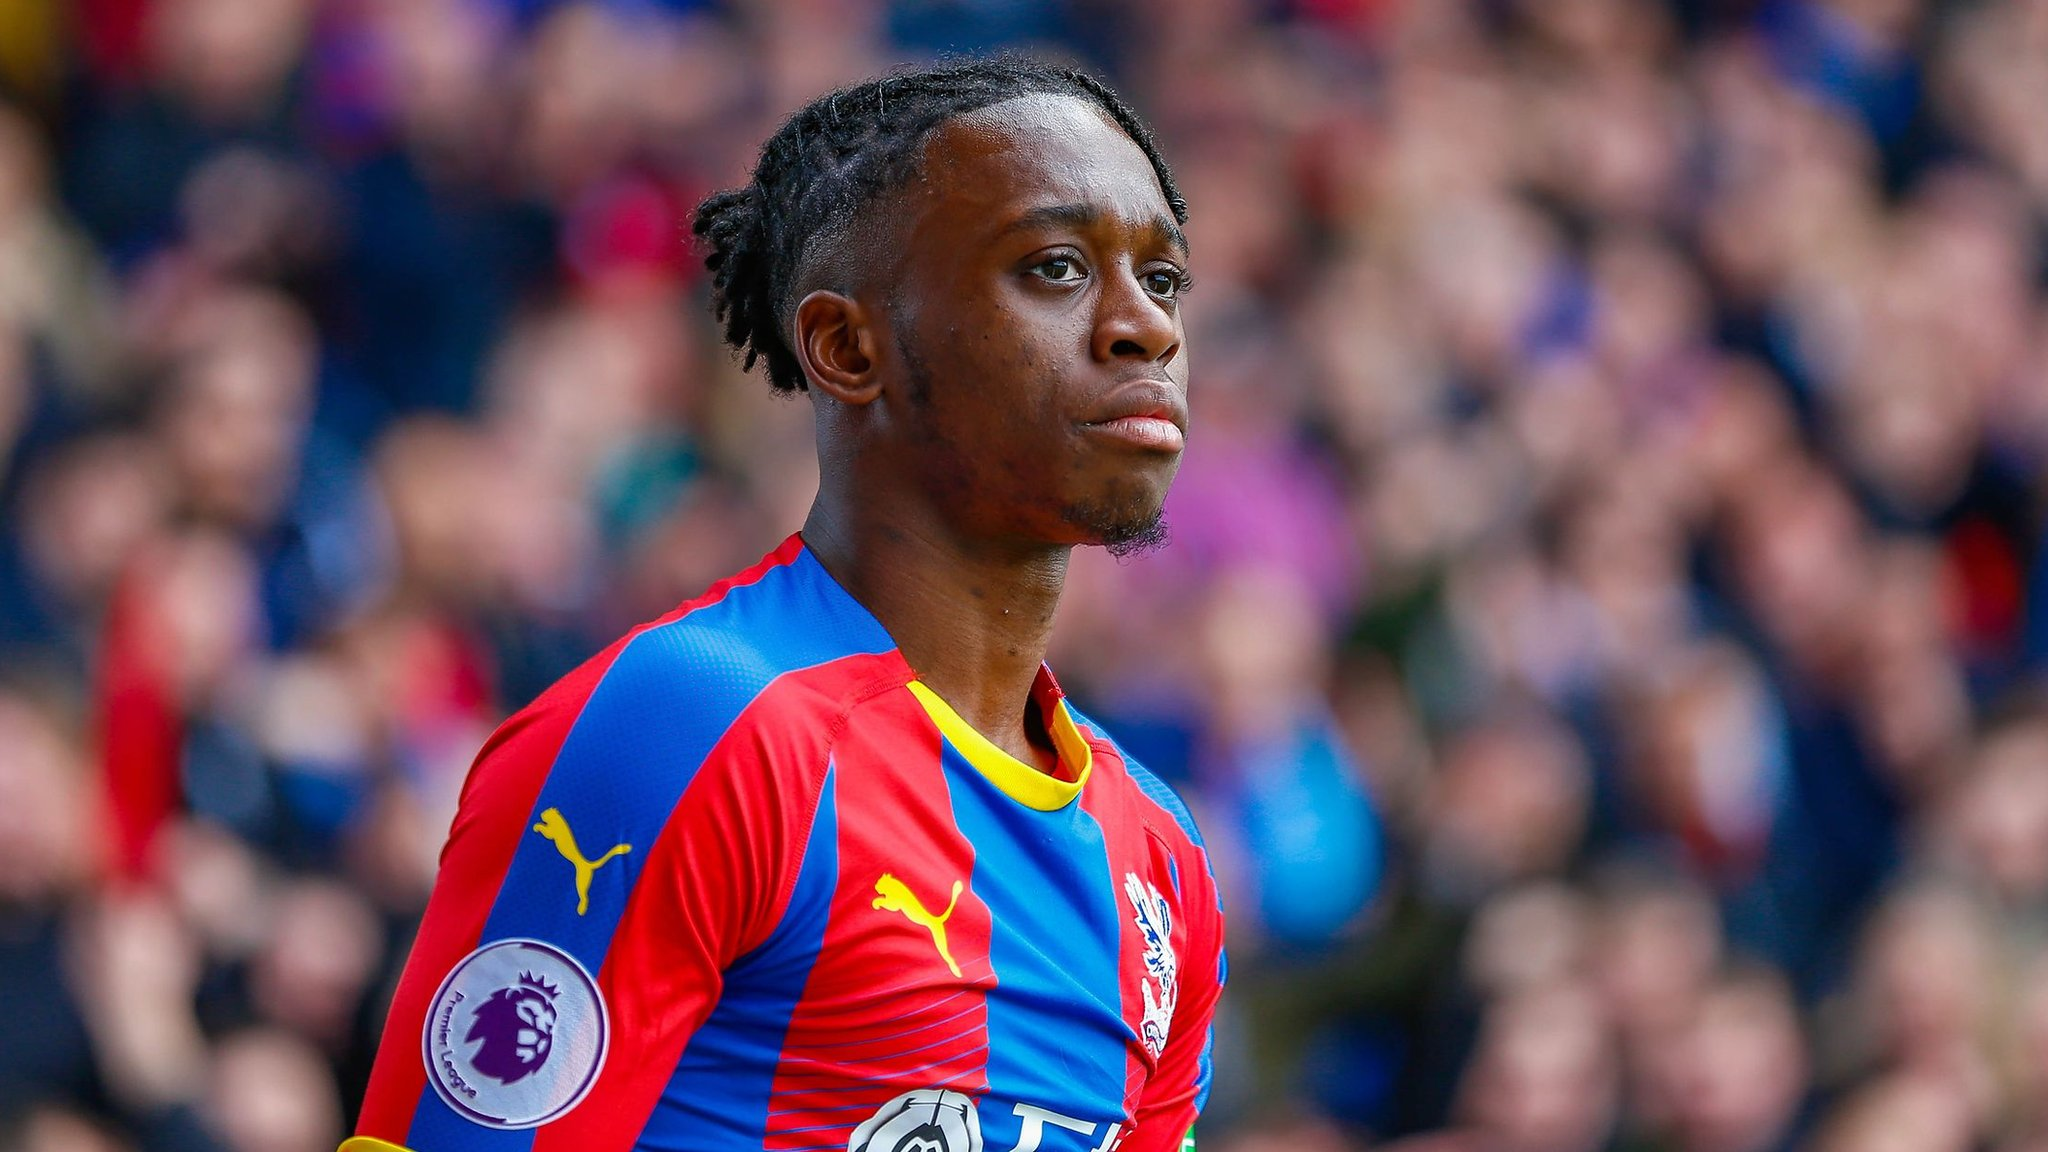 reputable site f231b 82a49 Aaron Wan-Bissaka  Man Utd reach agreement with Crystal Palace to sign  defender - Manchester United reach an agreement with Crystal Palace to sign  ...